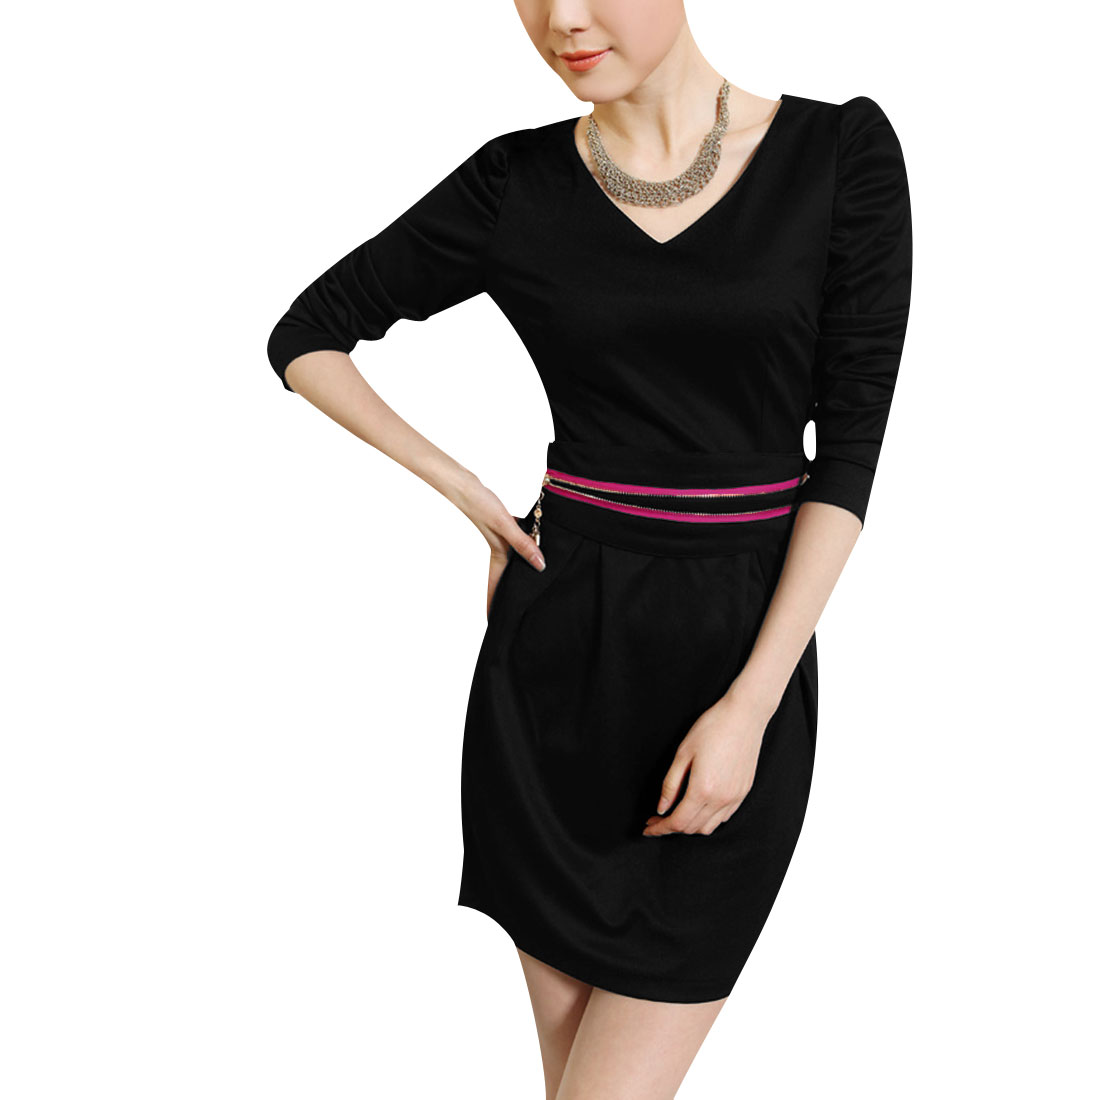 Ladies Black Puff Sleeves V Neck Pretty Above Knee Dress XS